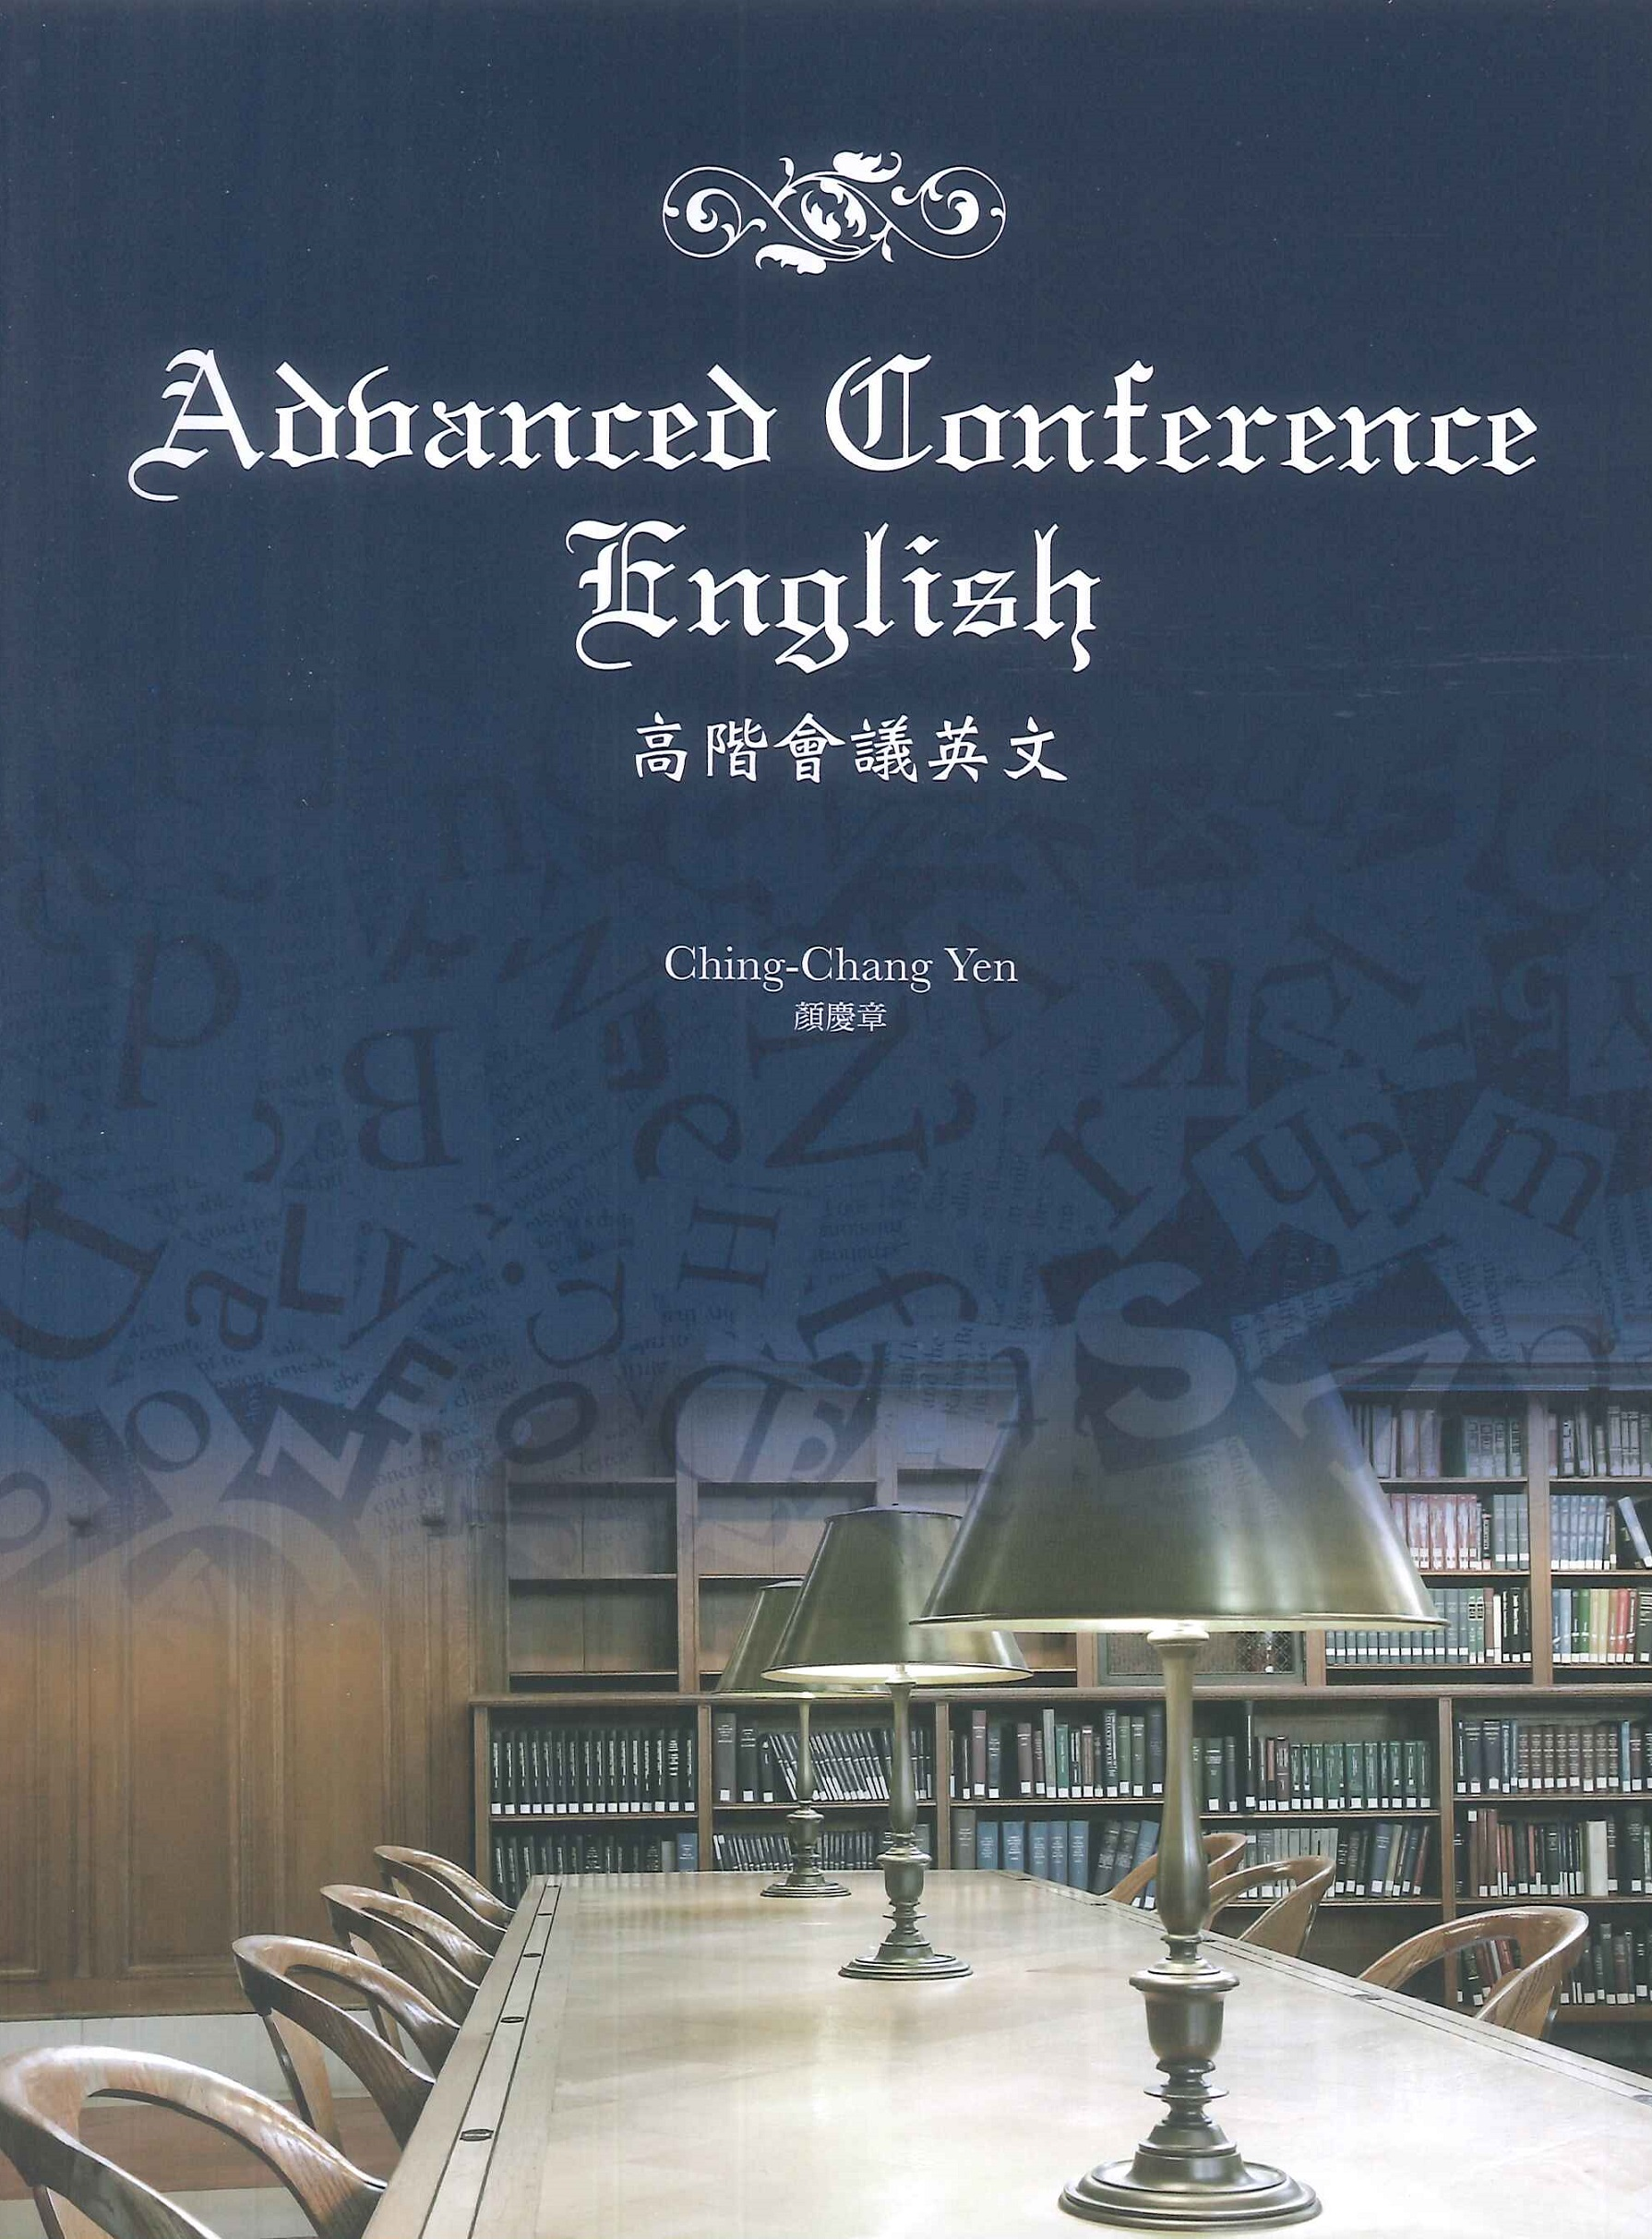 高階會議英文=Advanced conference English